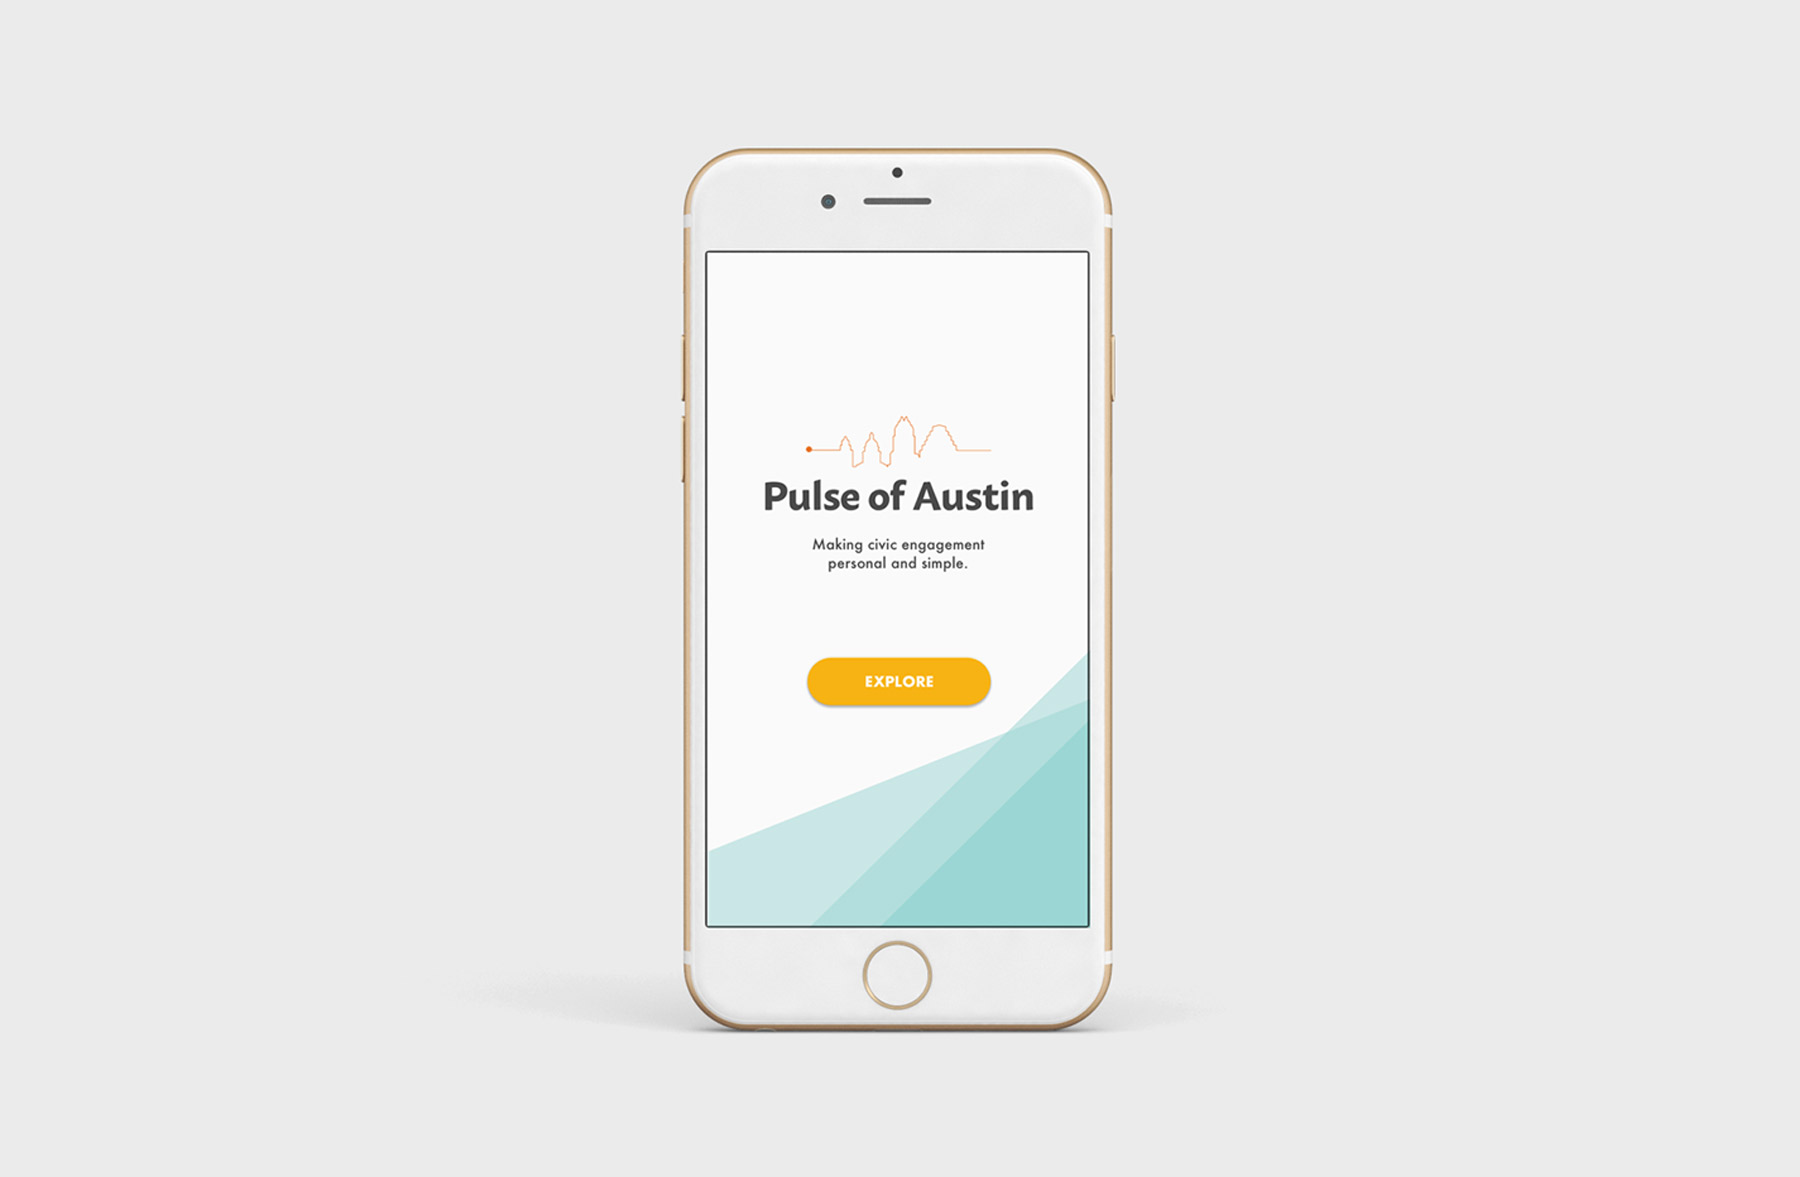 The Pulse of Austin - A mobile app to support civic engagement